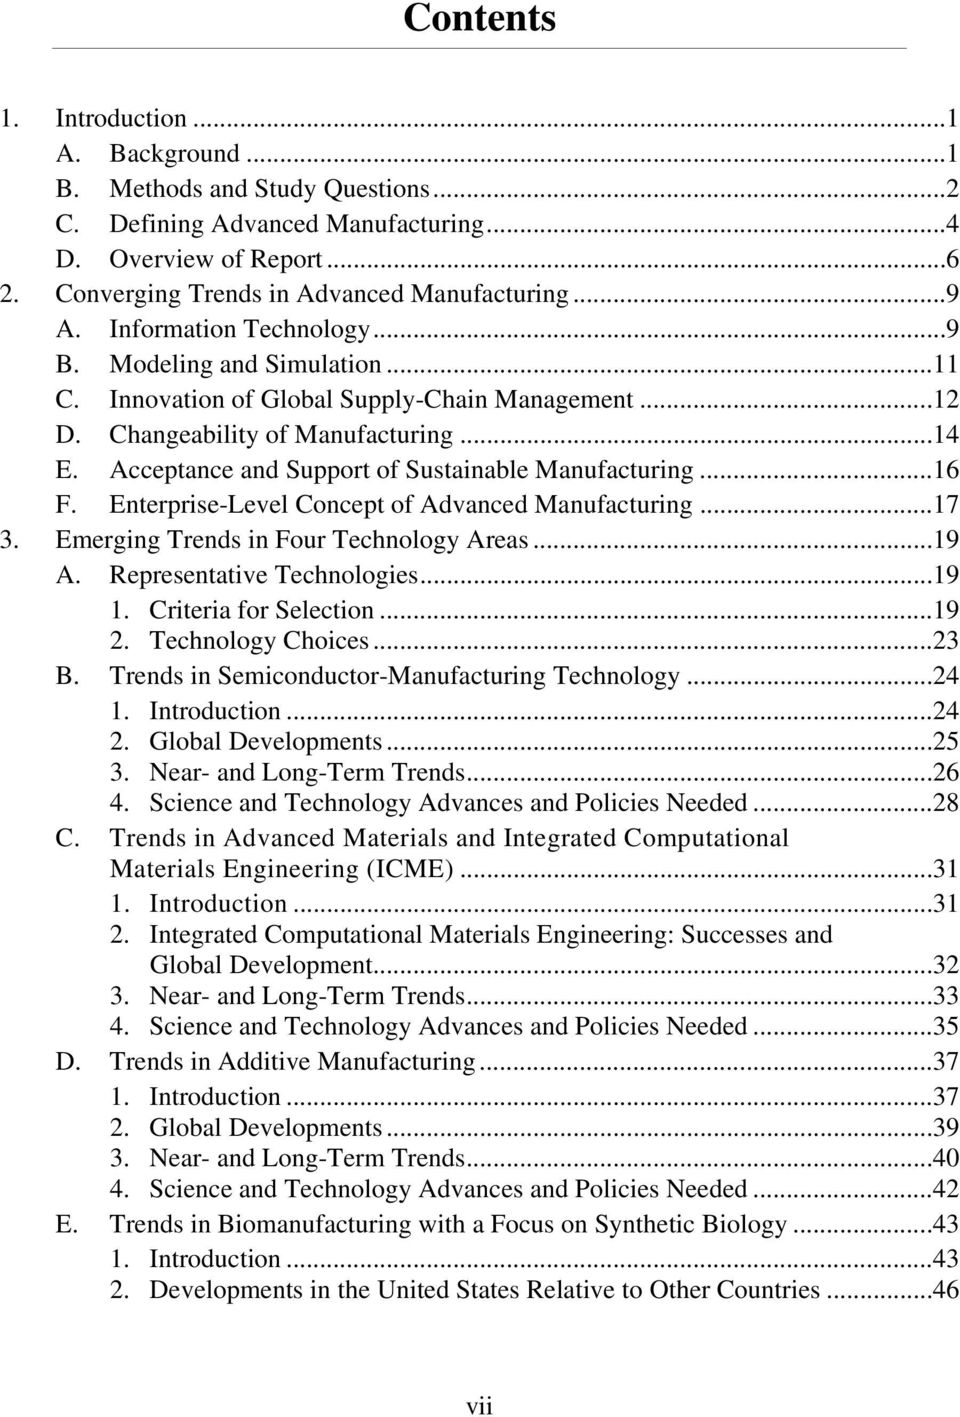 Acceptance and Support of Sustainable Manufacturing...16 F. Enterprise-Level Concept of Advanced Manufacturing...17 3. Emerging Trends in Four Technology Areas...19 A. Representative Technologies.